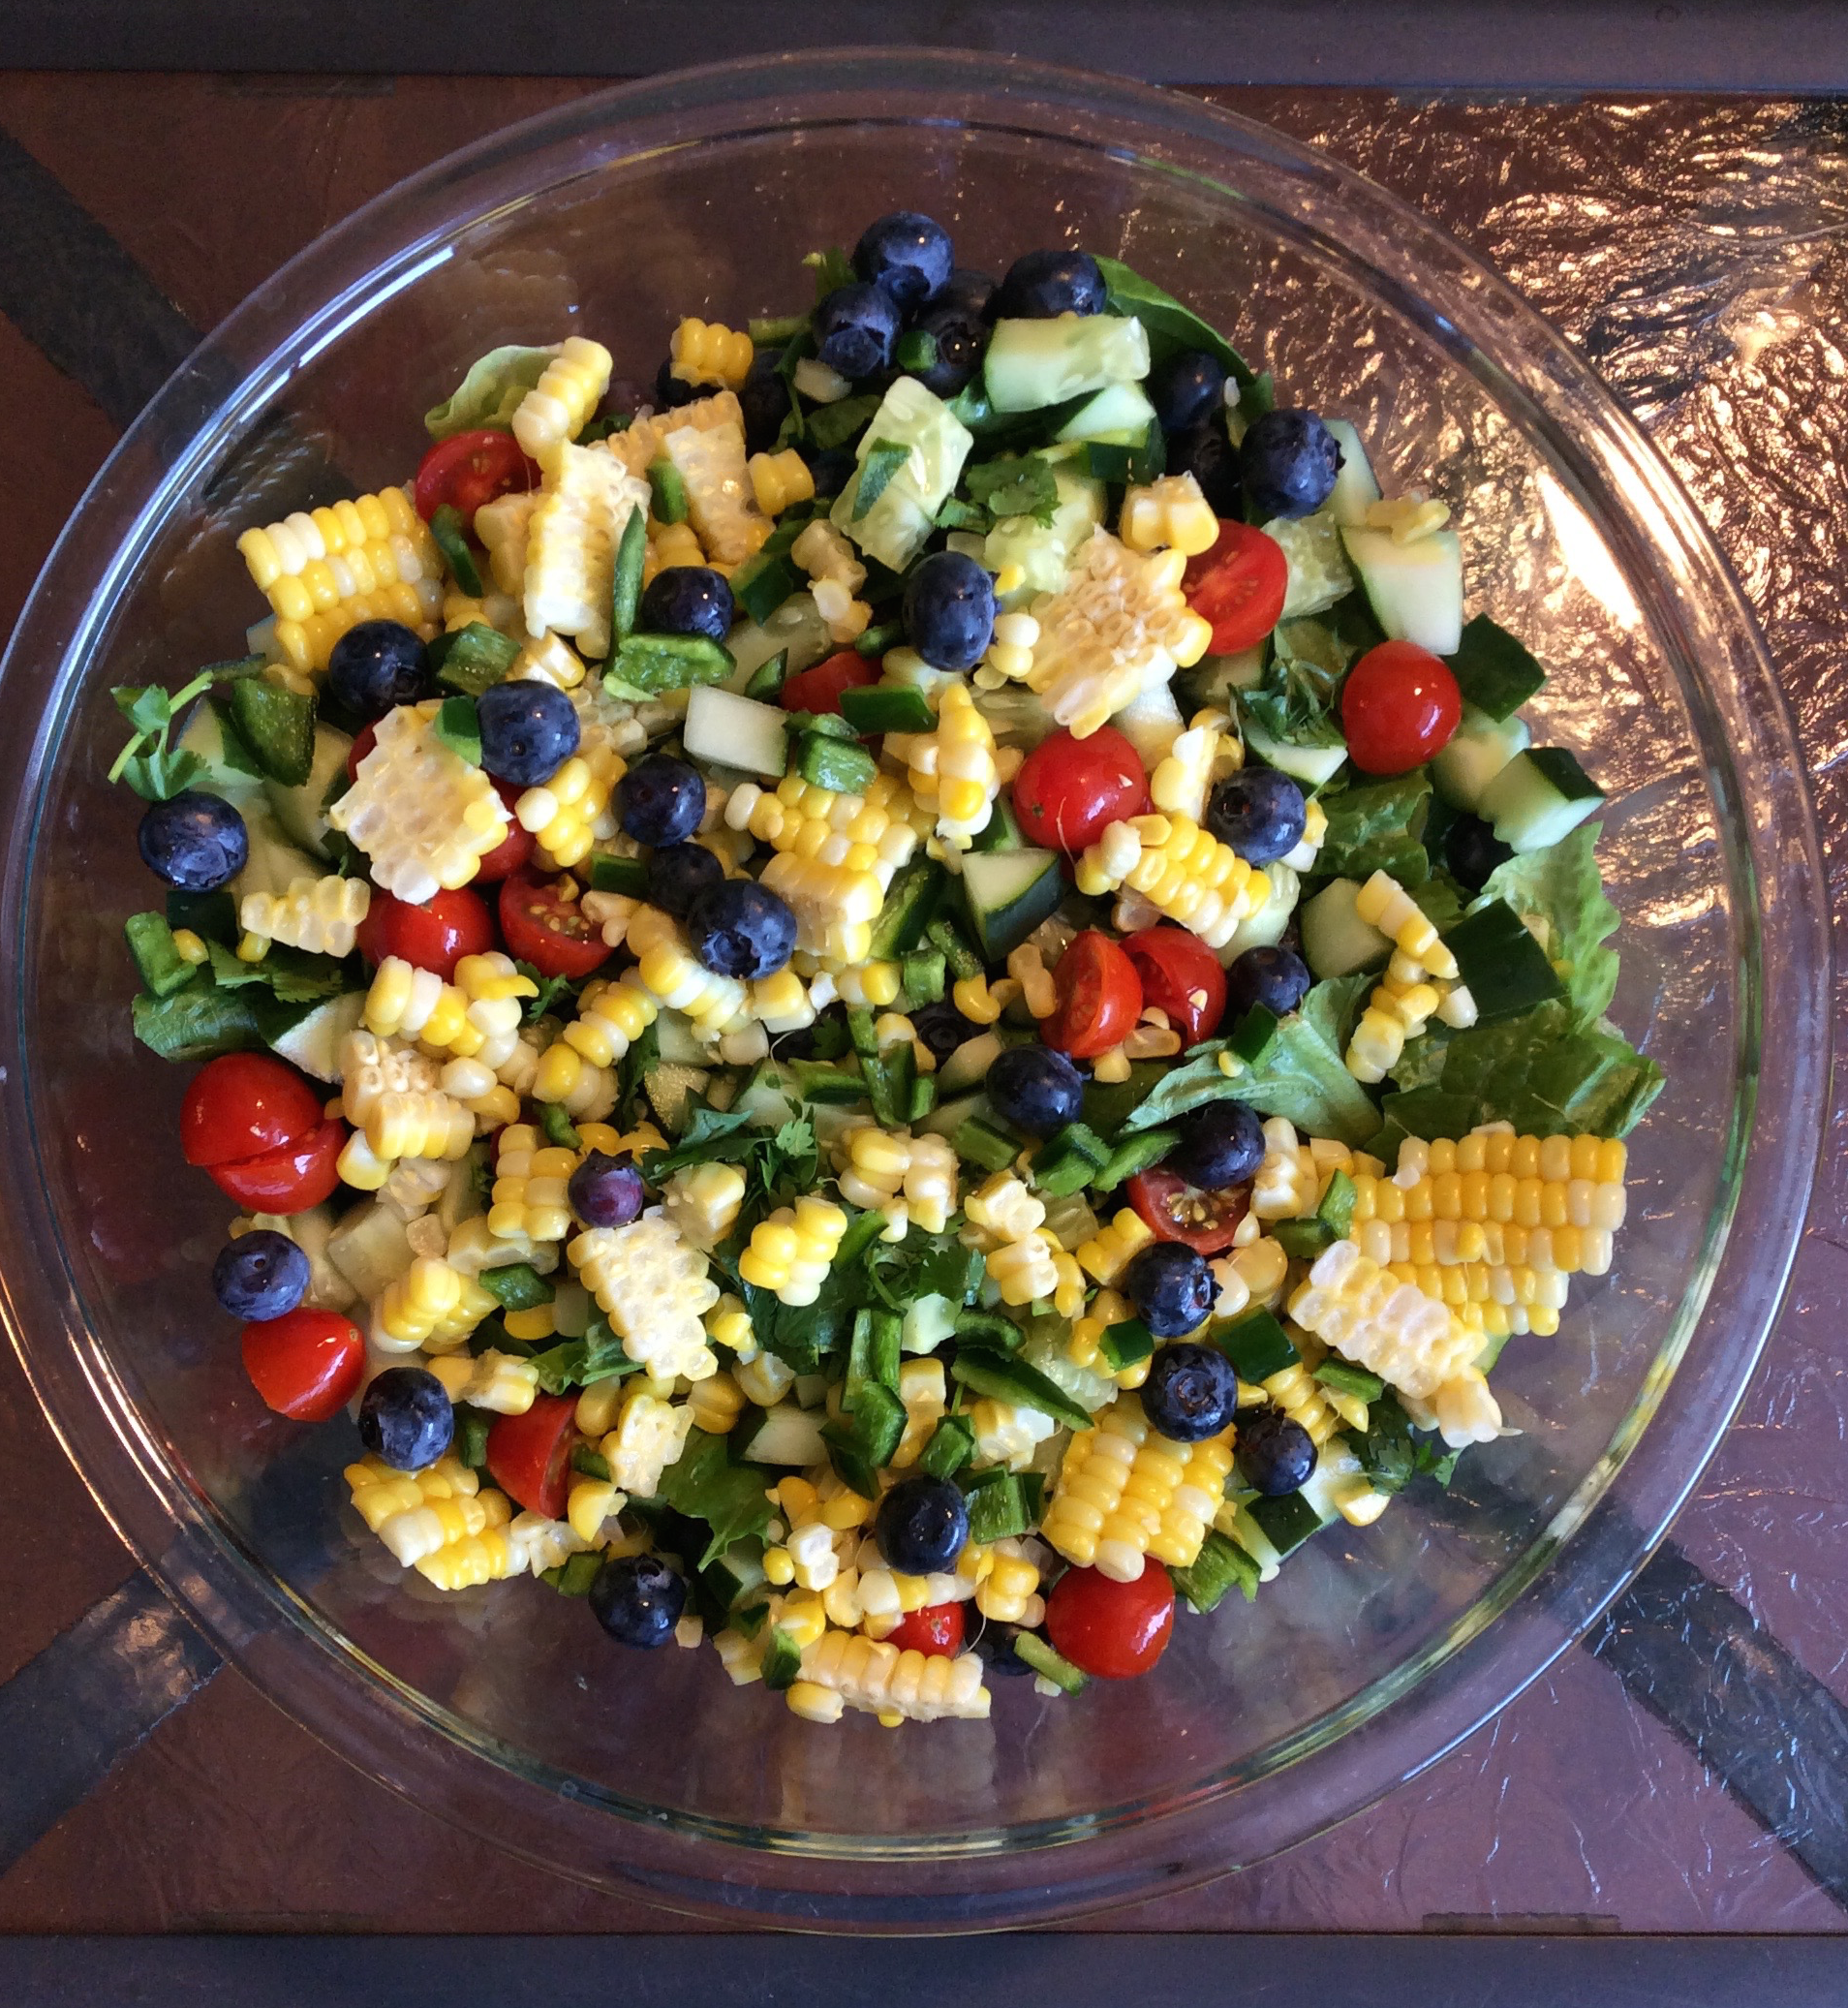 Blueberry and Corn Salad | The Juicing Nutritionist